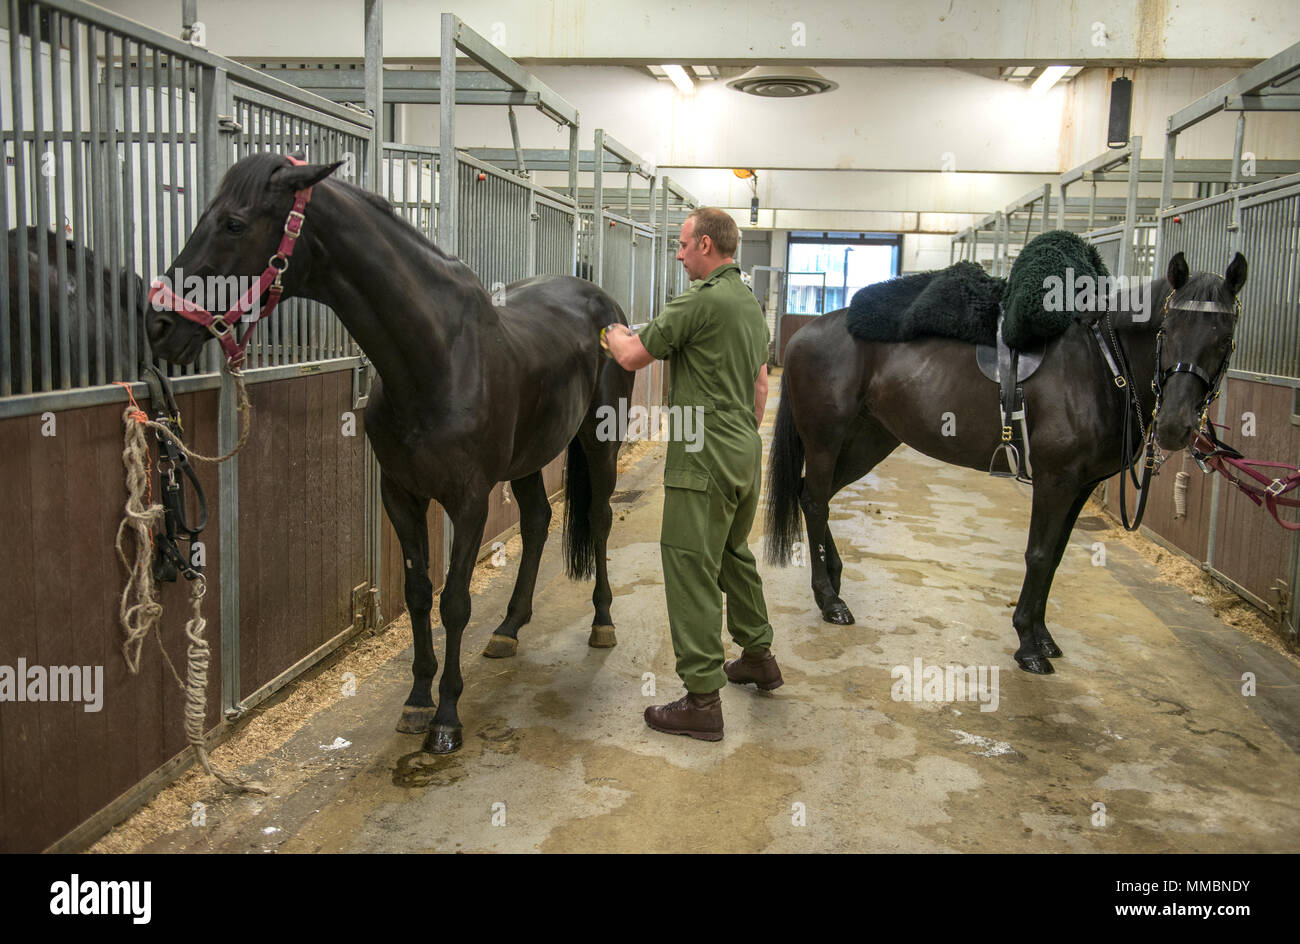 London, UK. Behind-the-scenes 'Day in the Life' of the Household Cavalry Mounted Regiment'. Work in The Stables line cleaning the Cavalry horses. - Stock Image